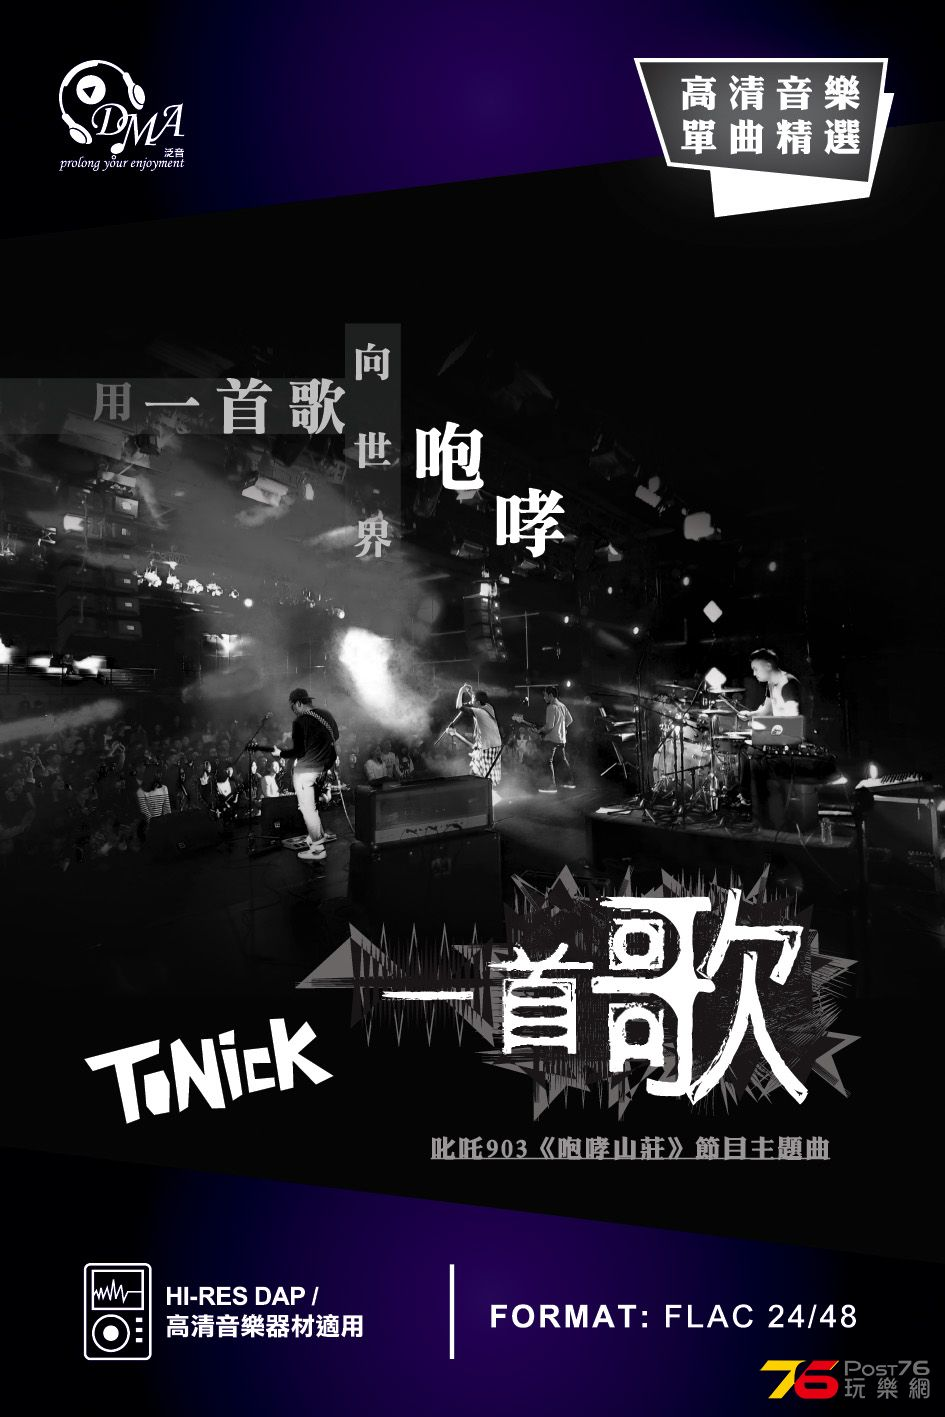 tonick_cover